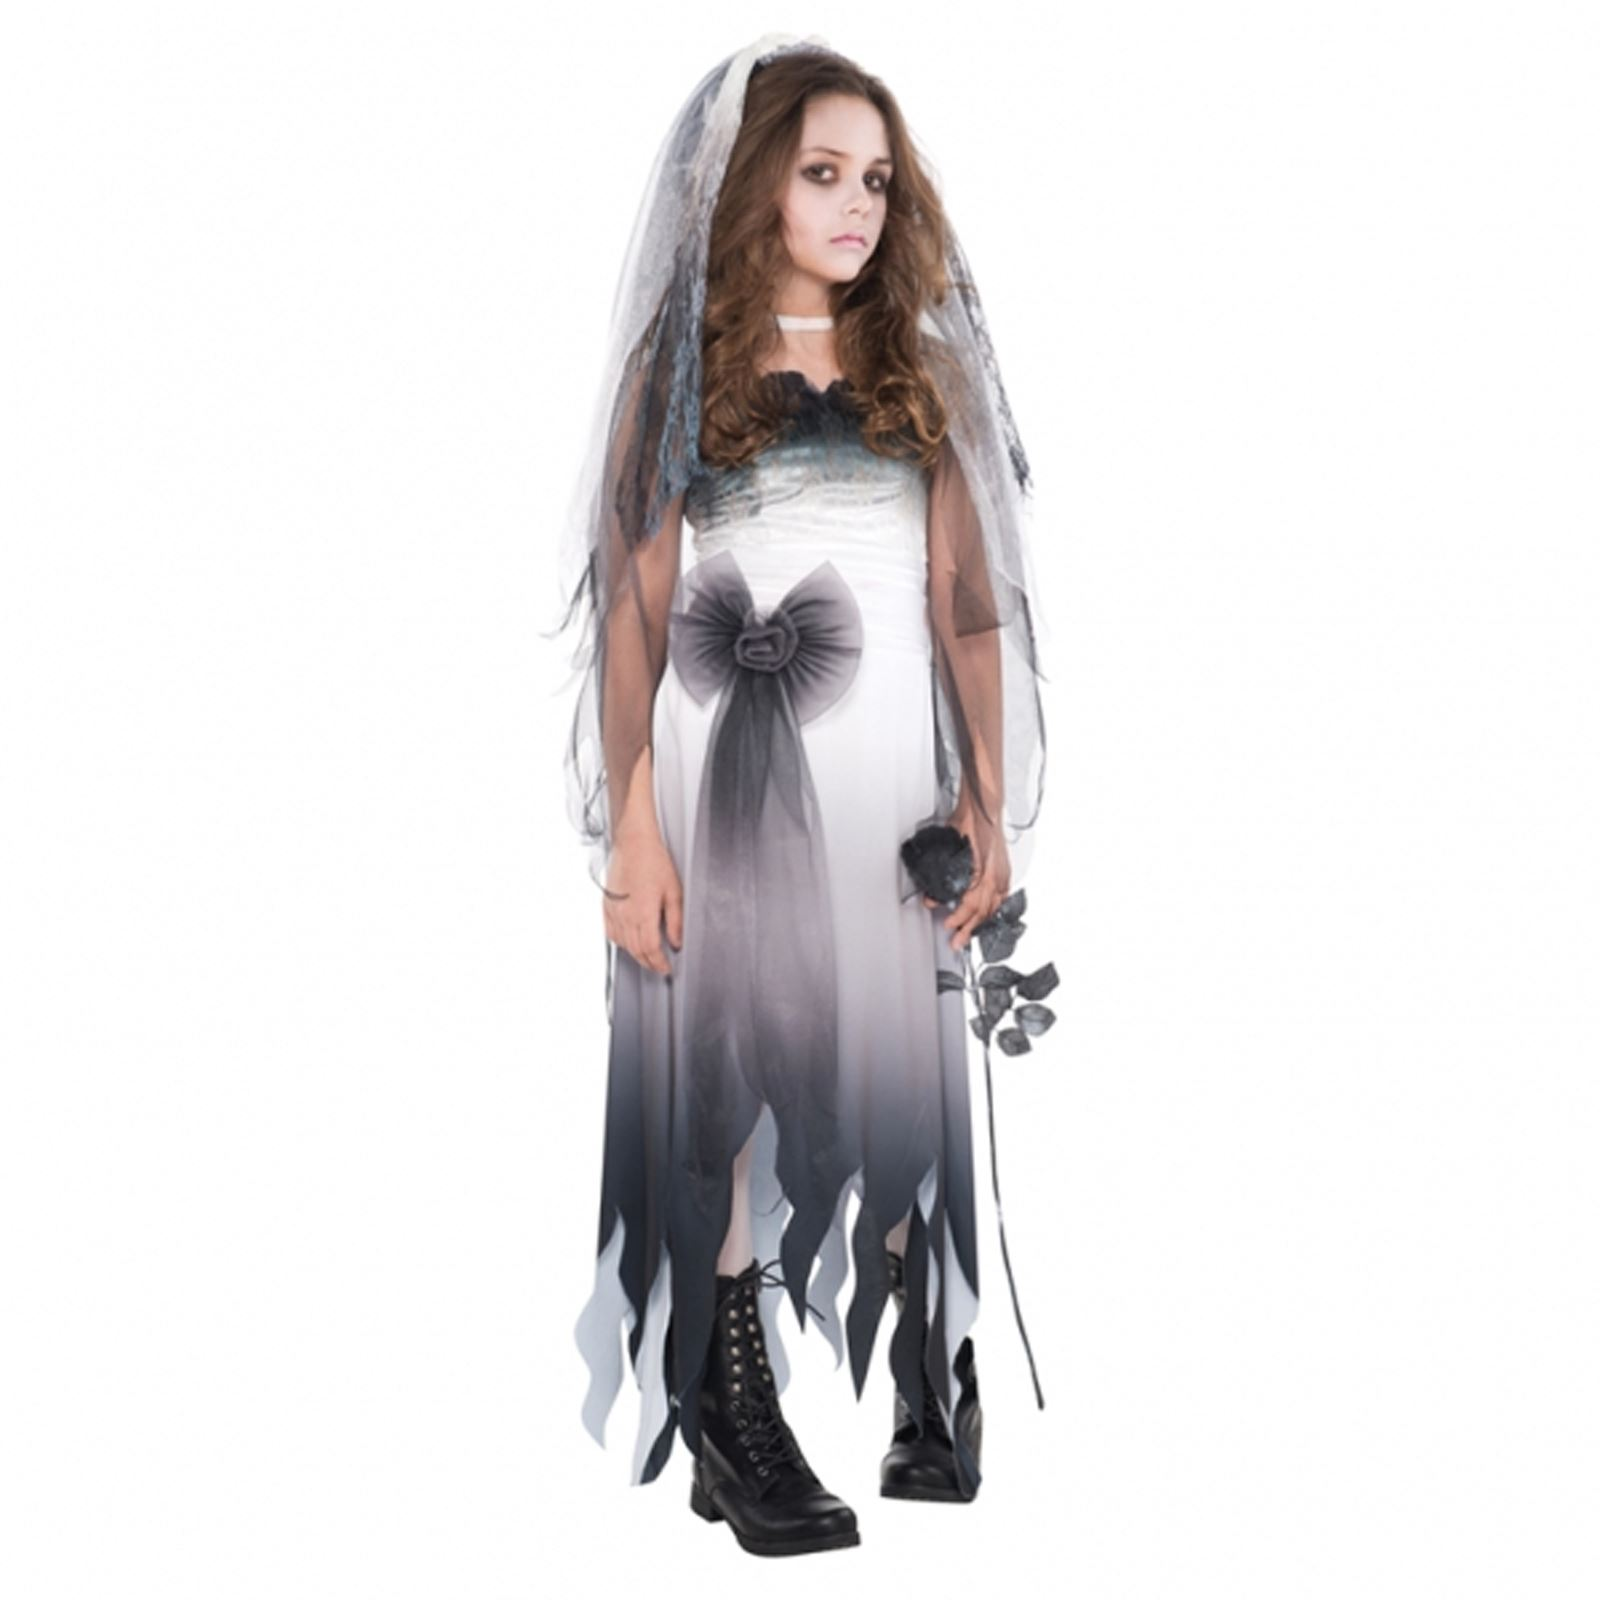 Teen Corpse Bride Halloween Ghost Wedding Zombie Girl Fancy Dress